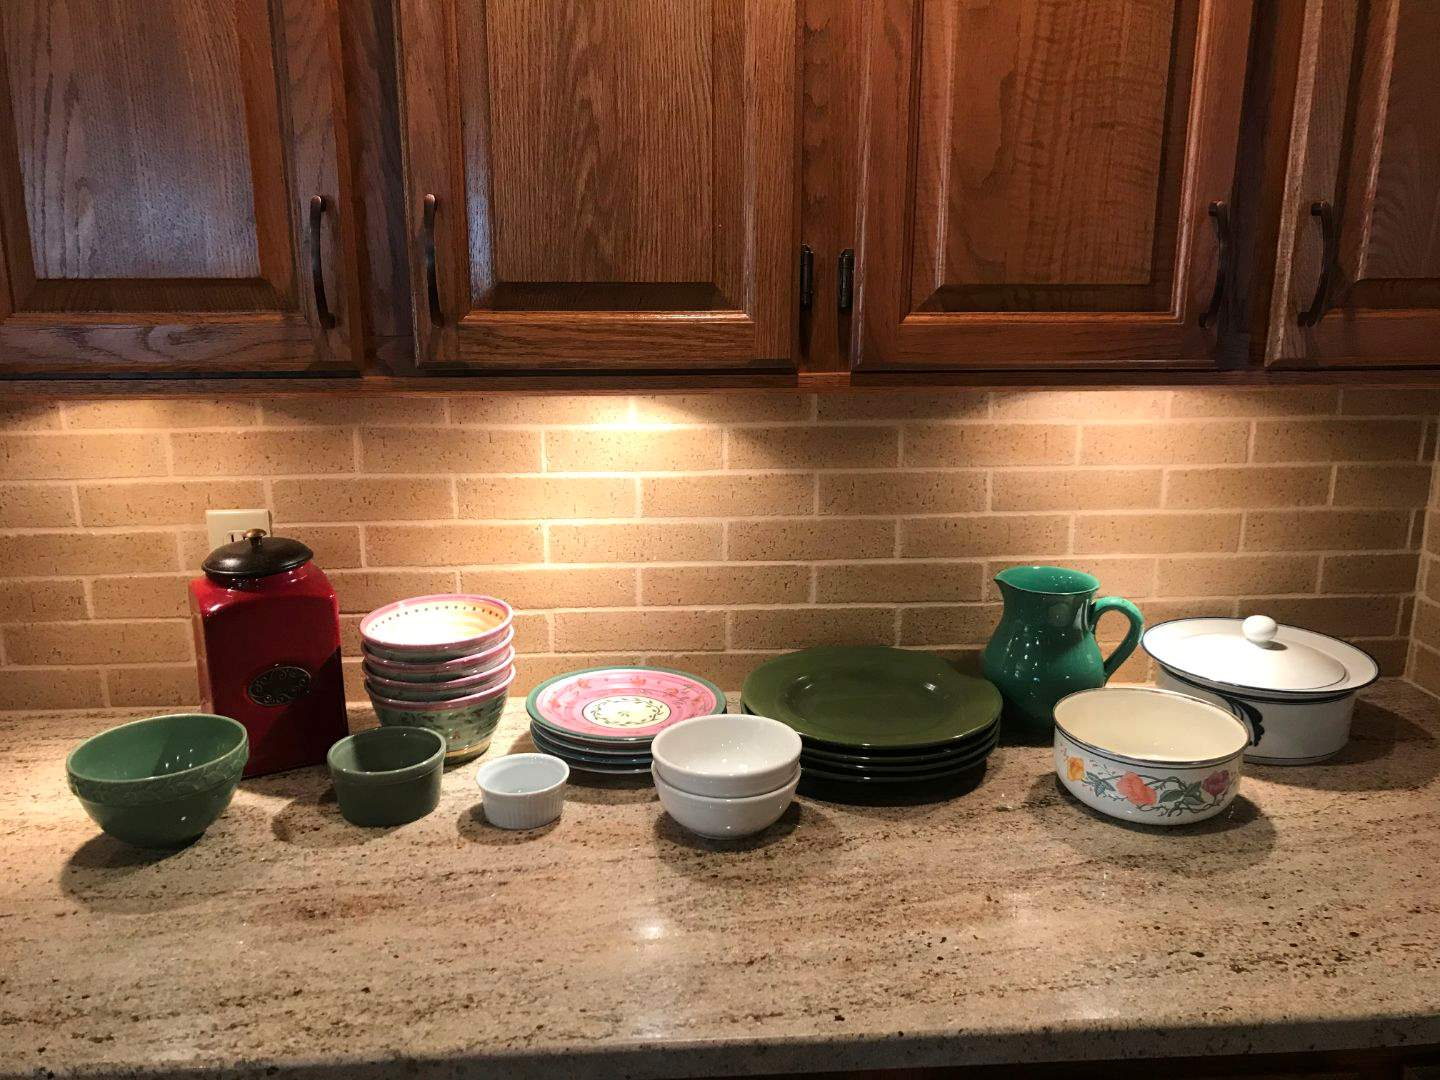 Lot # 68 - Bowls, Plates, Canisters, Pitcher & Serving Dish (main image)